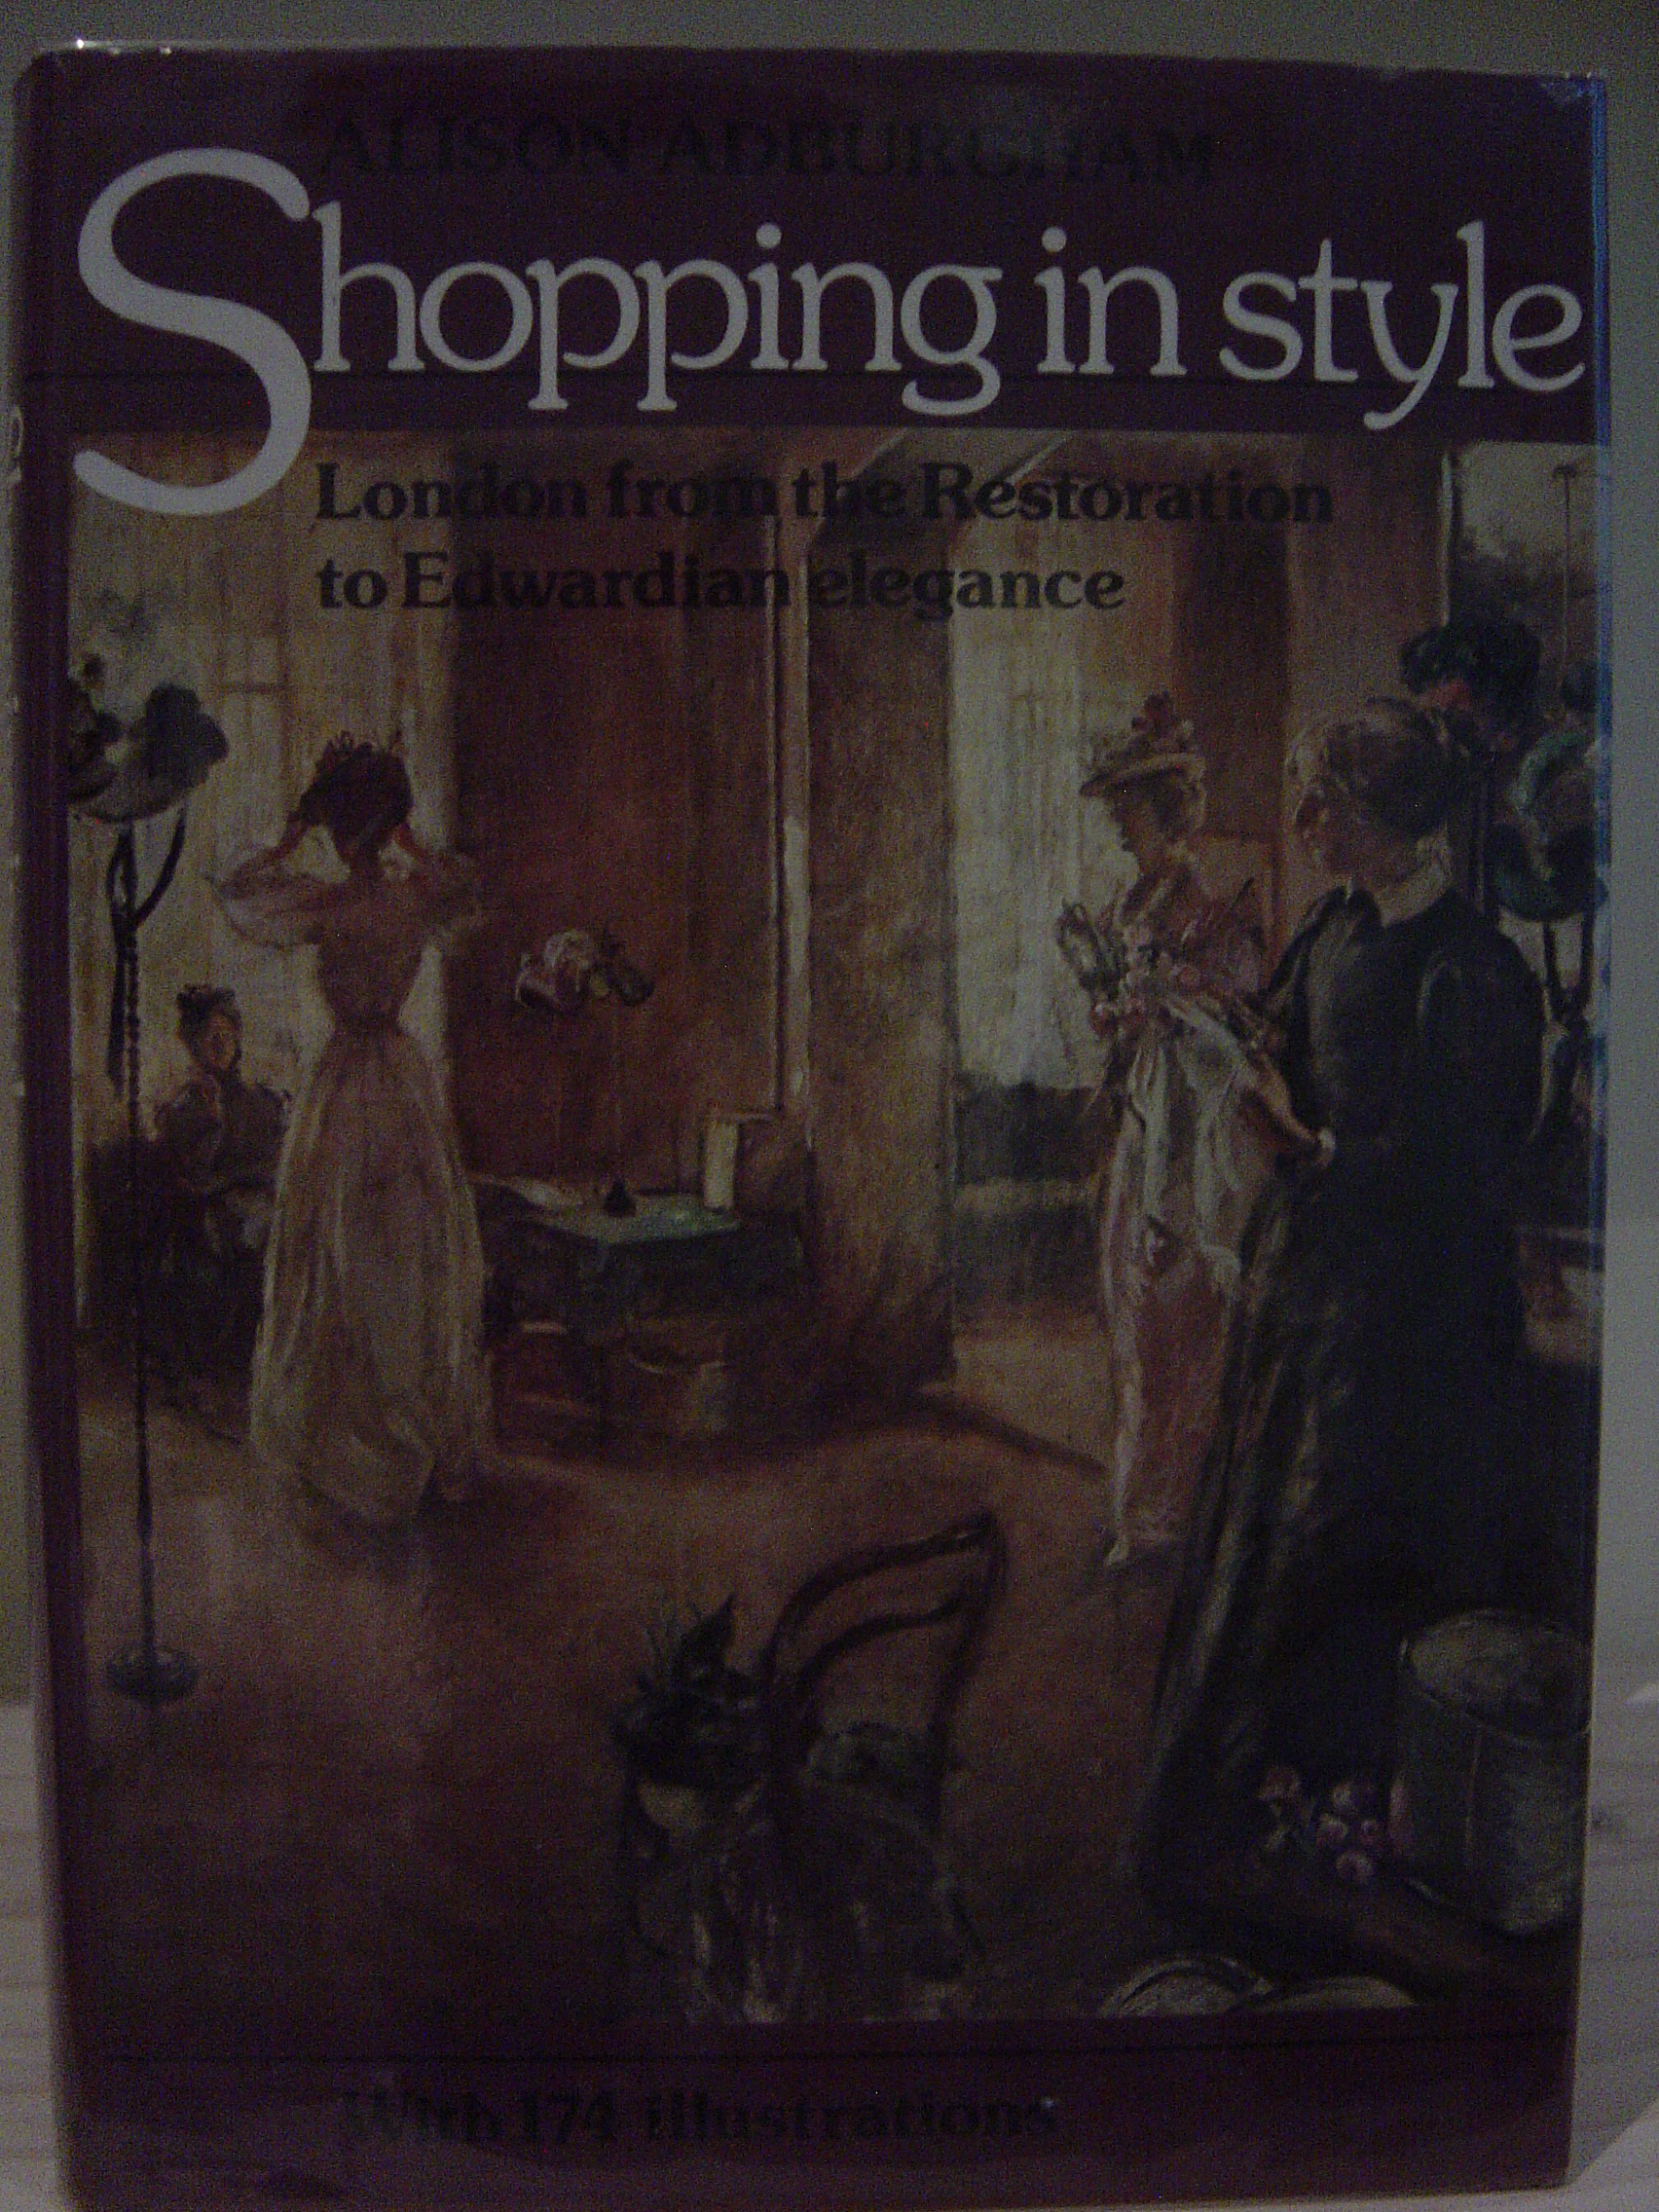 Image for Shopping in Style: London from the Restoration to Edwardian Elegance